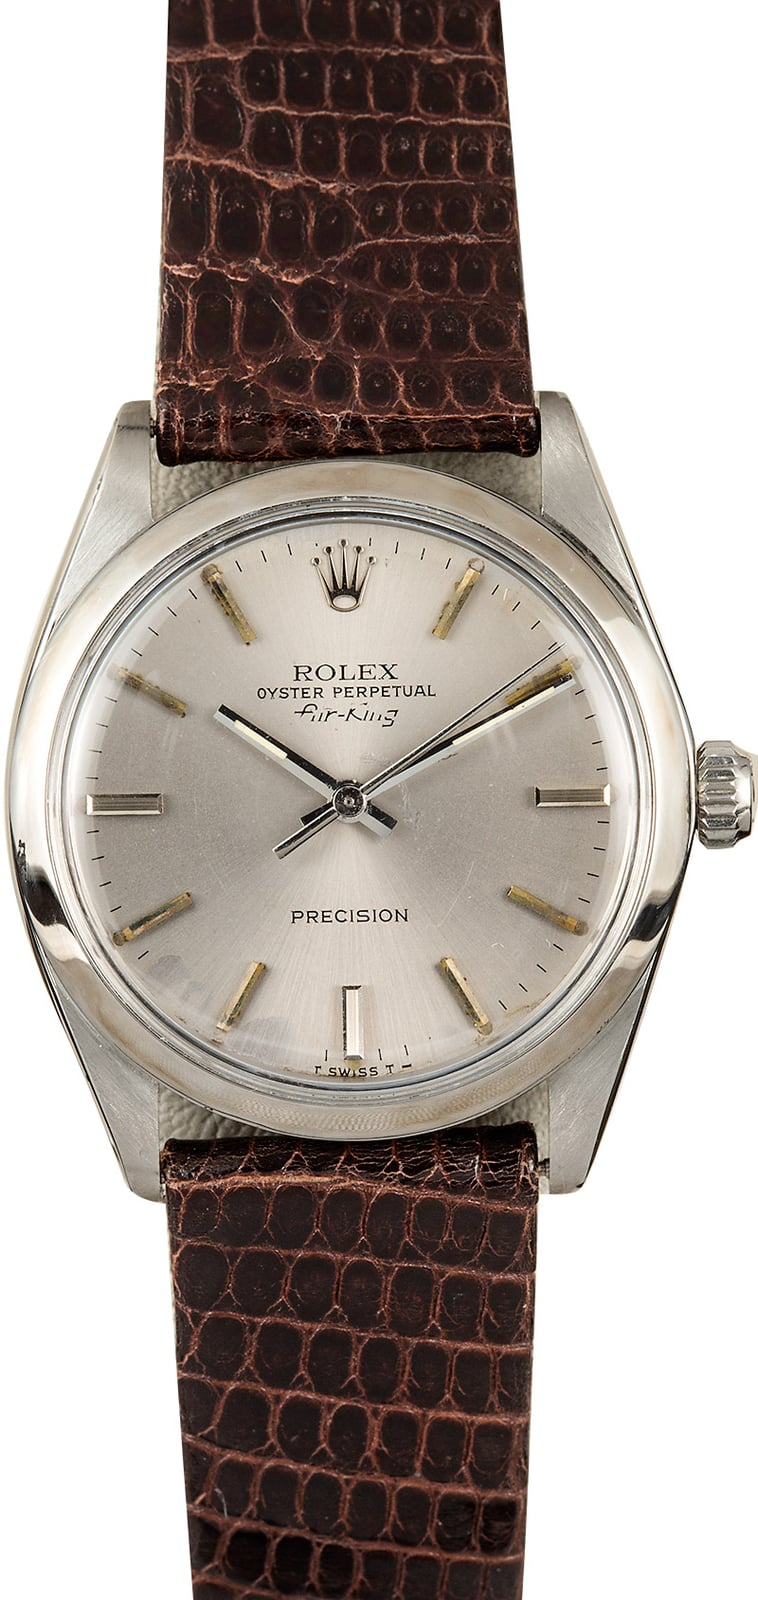 Rolex air king 5500 vintage certified pre owned for Rolex air king